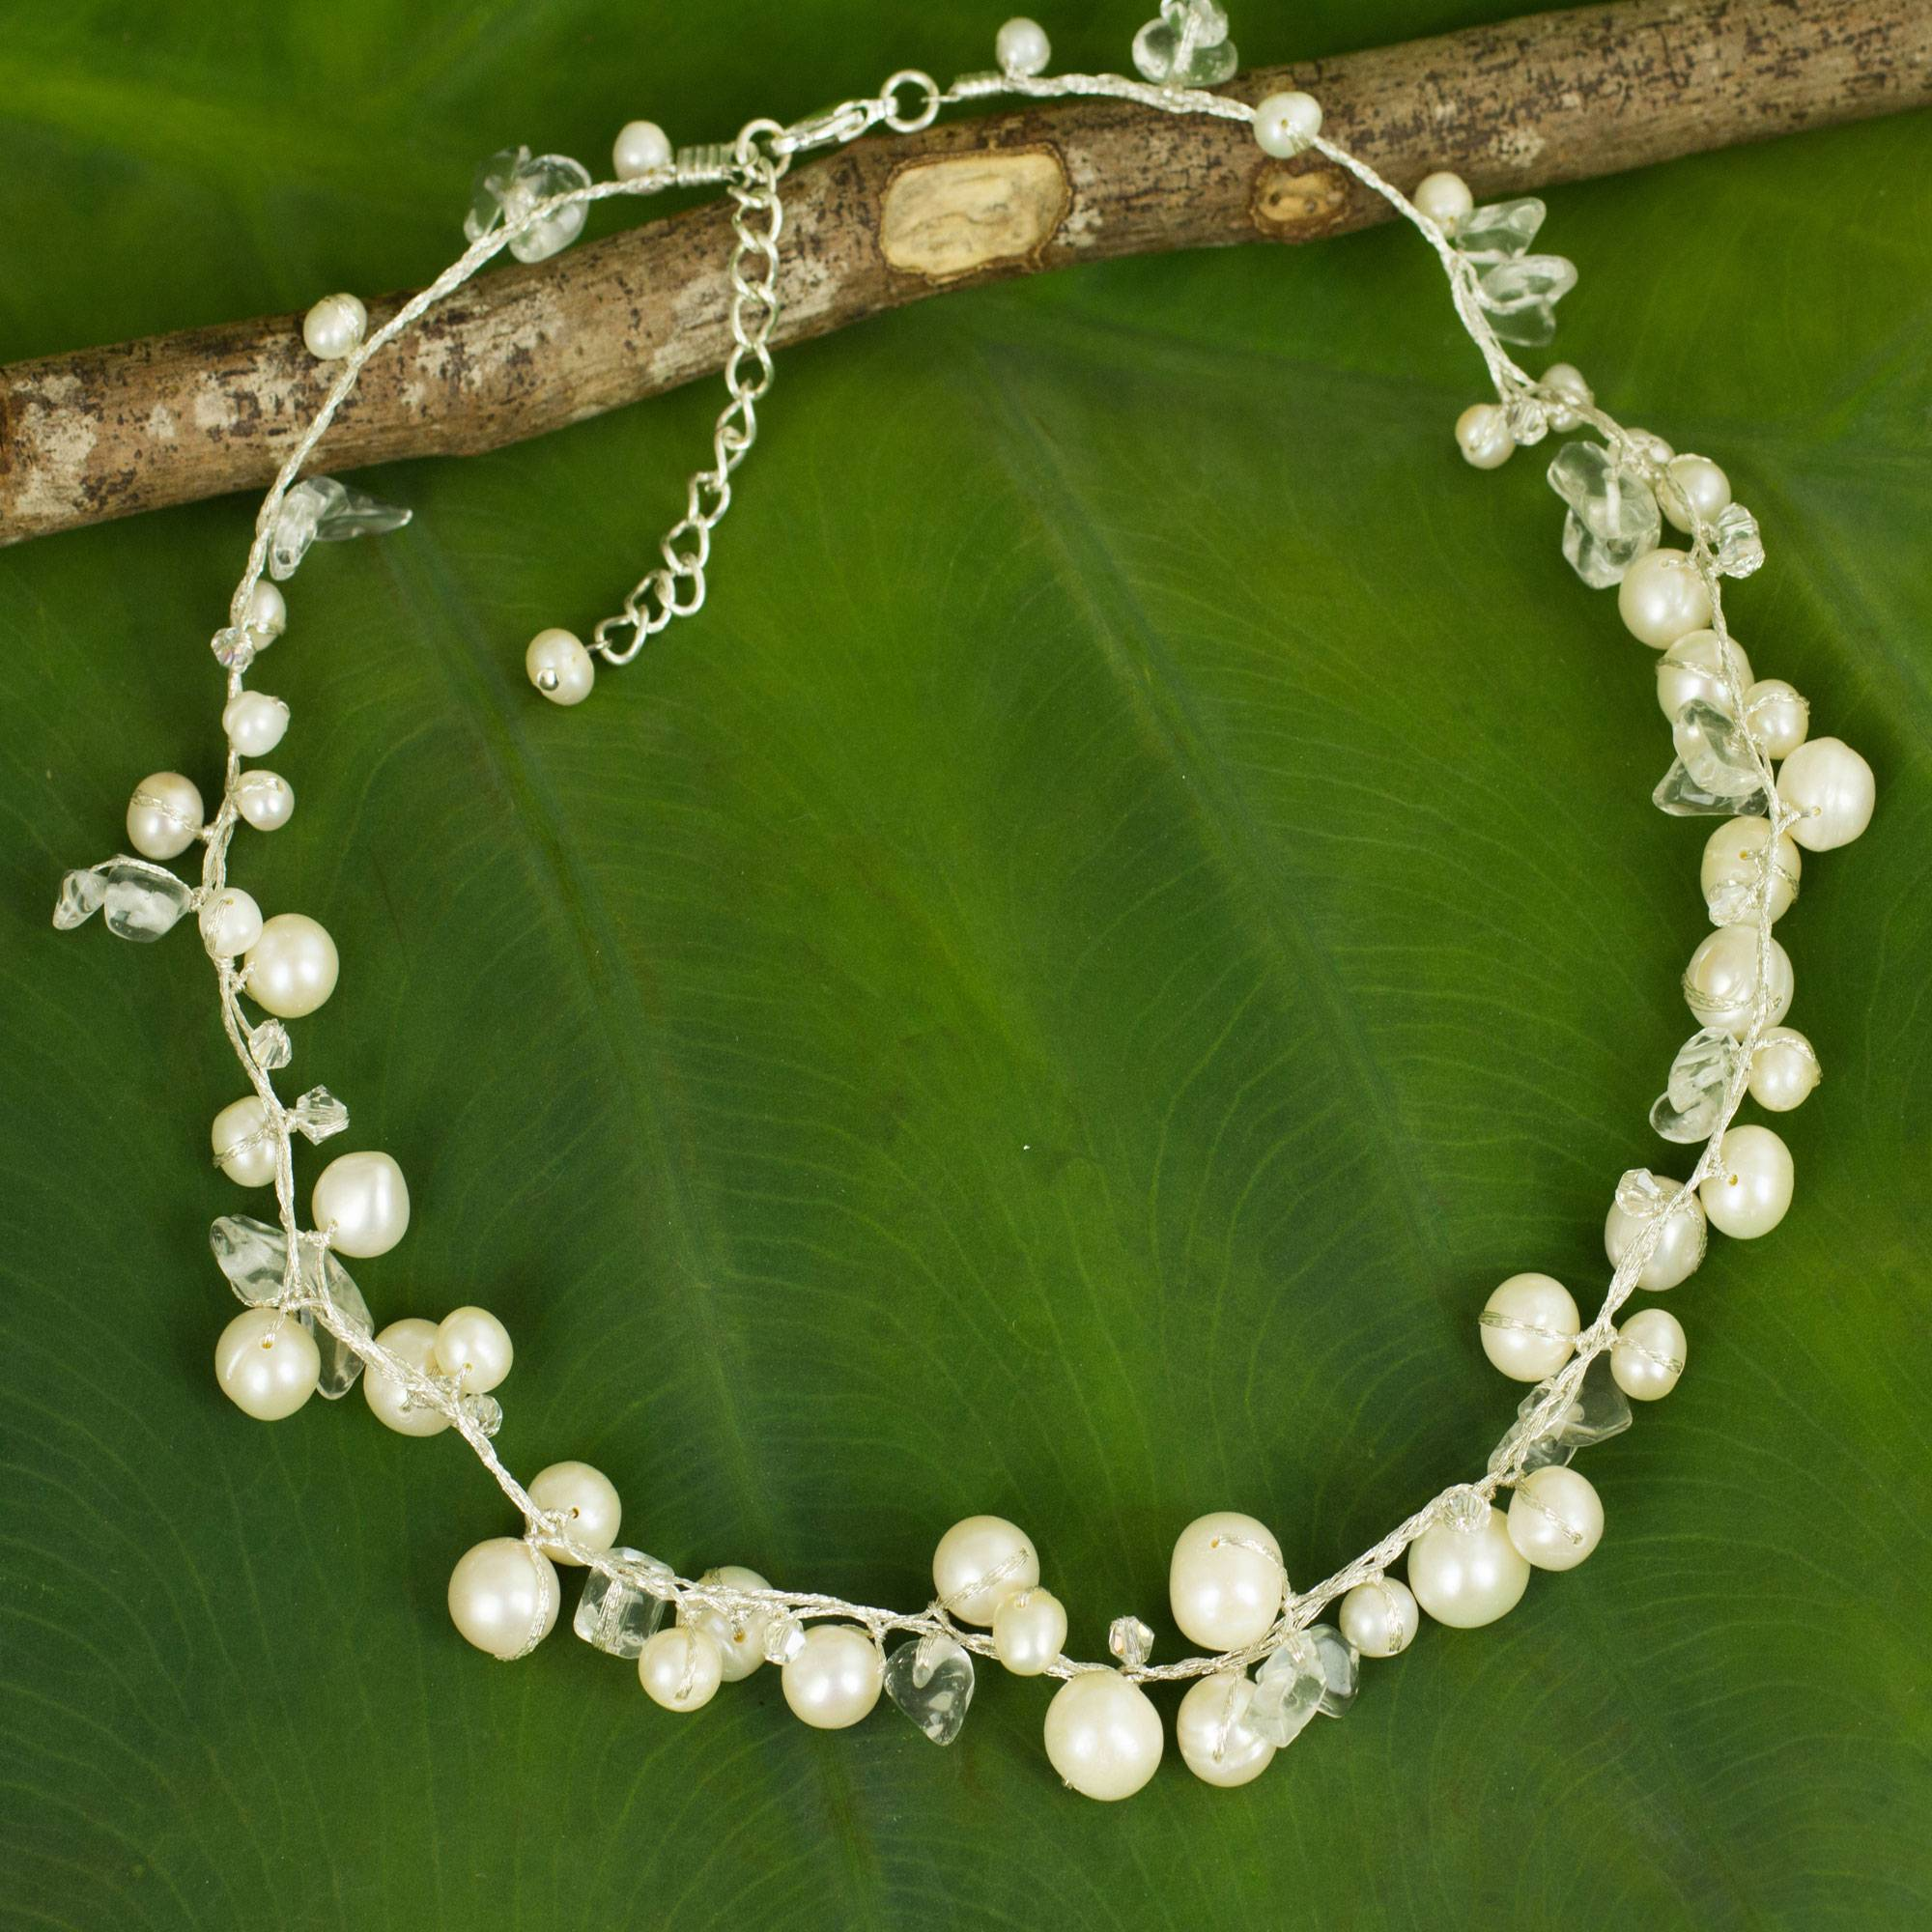 Thai Pearl Necklace - River of Snow | NOVICA